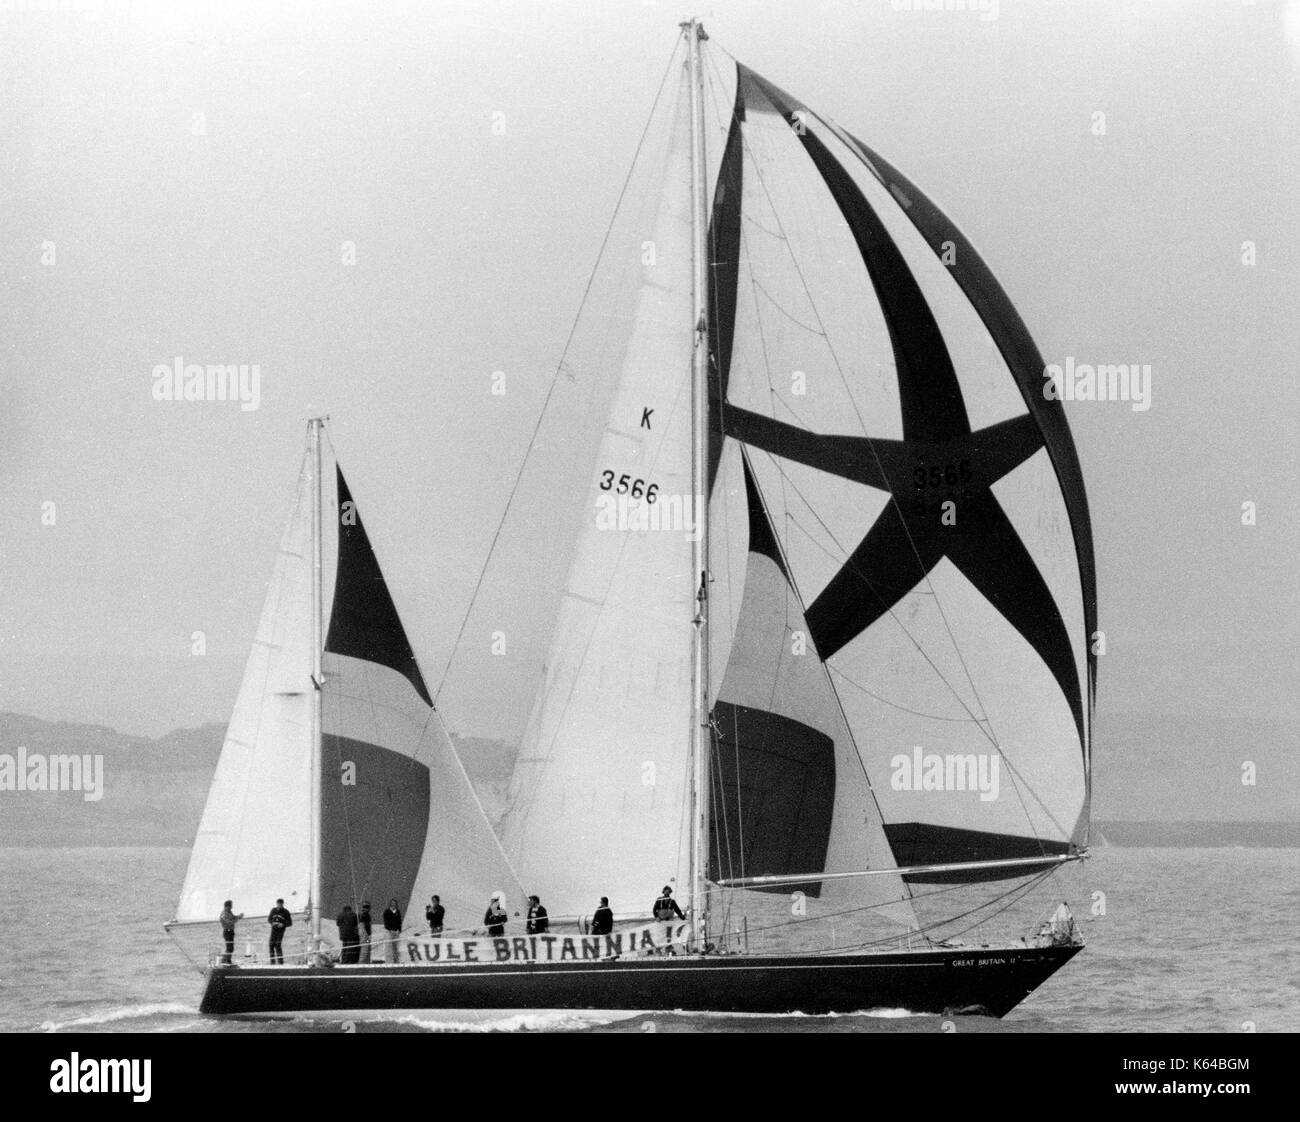 AJAXNETPHOTO. 1976. CHANNEL, ENGLAND. - FT CLIPPER RACE END - KETCH RIGGED GREAT BRITAIN II NEARING THE END OF THE FT CLIPPER RACE AS SHE SAILS UP CHANNEL TO THE THAMES; CREW DISPLAYING 'RULE BRITANNIA' BANNER.